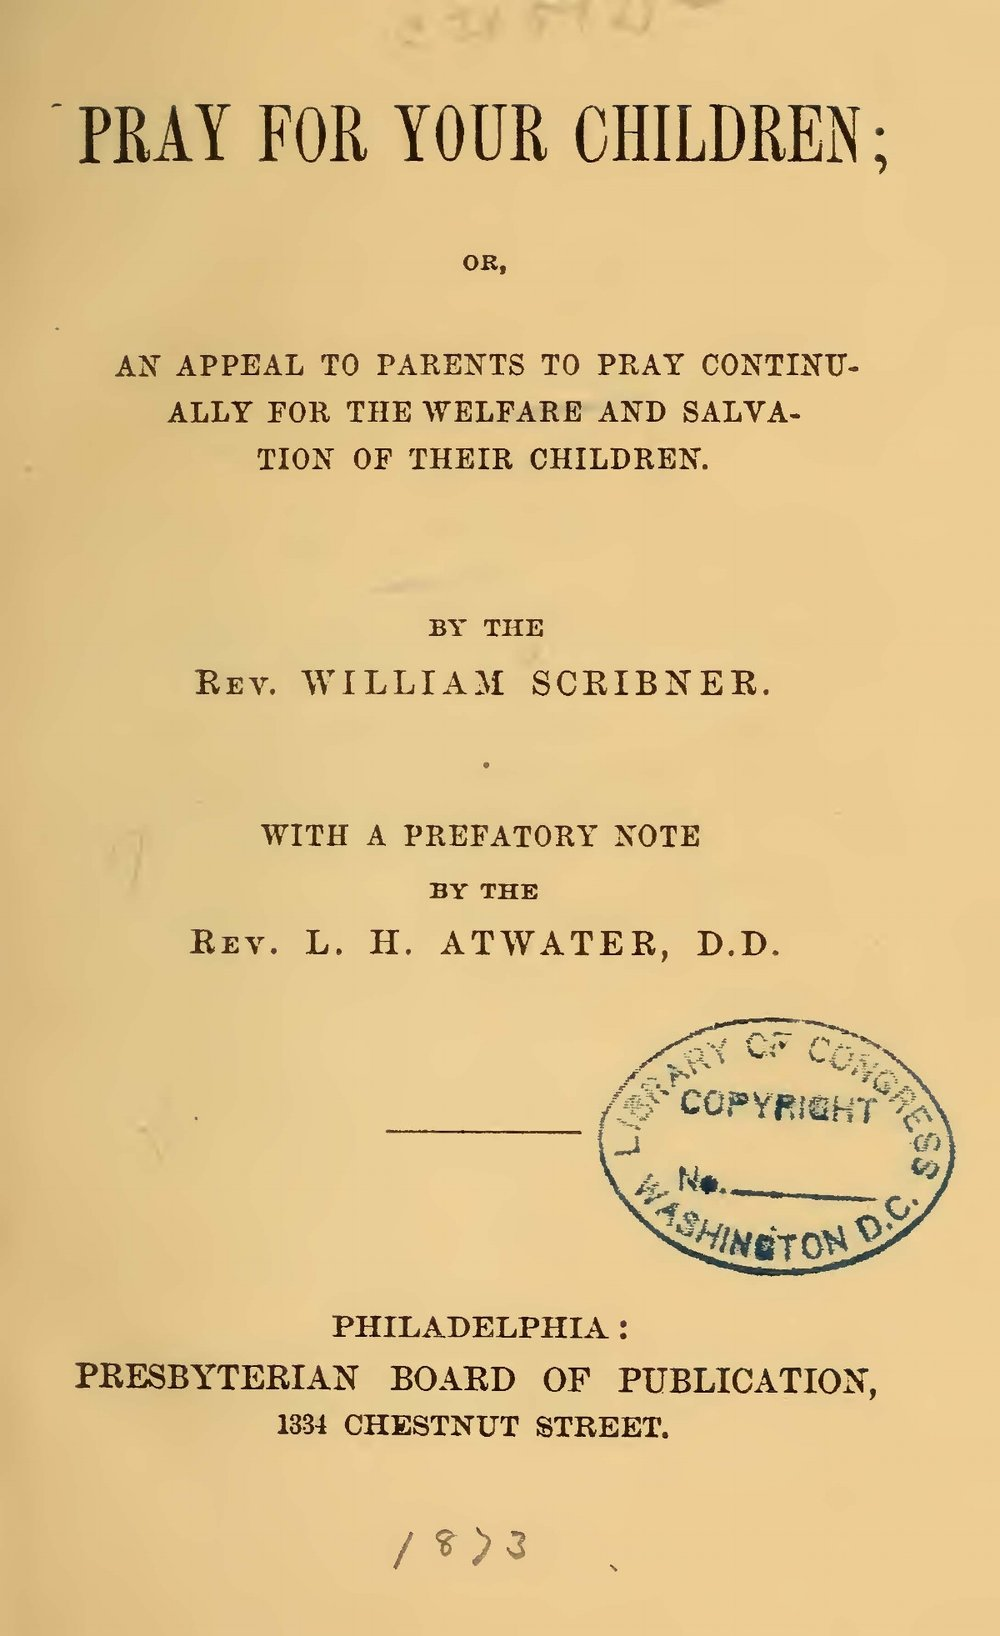 Scribner, William, Pray For Your Children Title Page.jpg